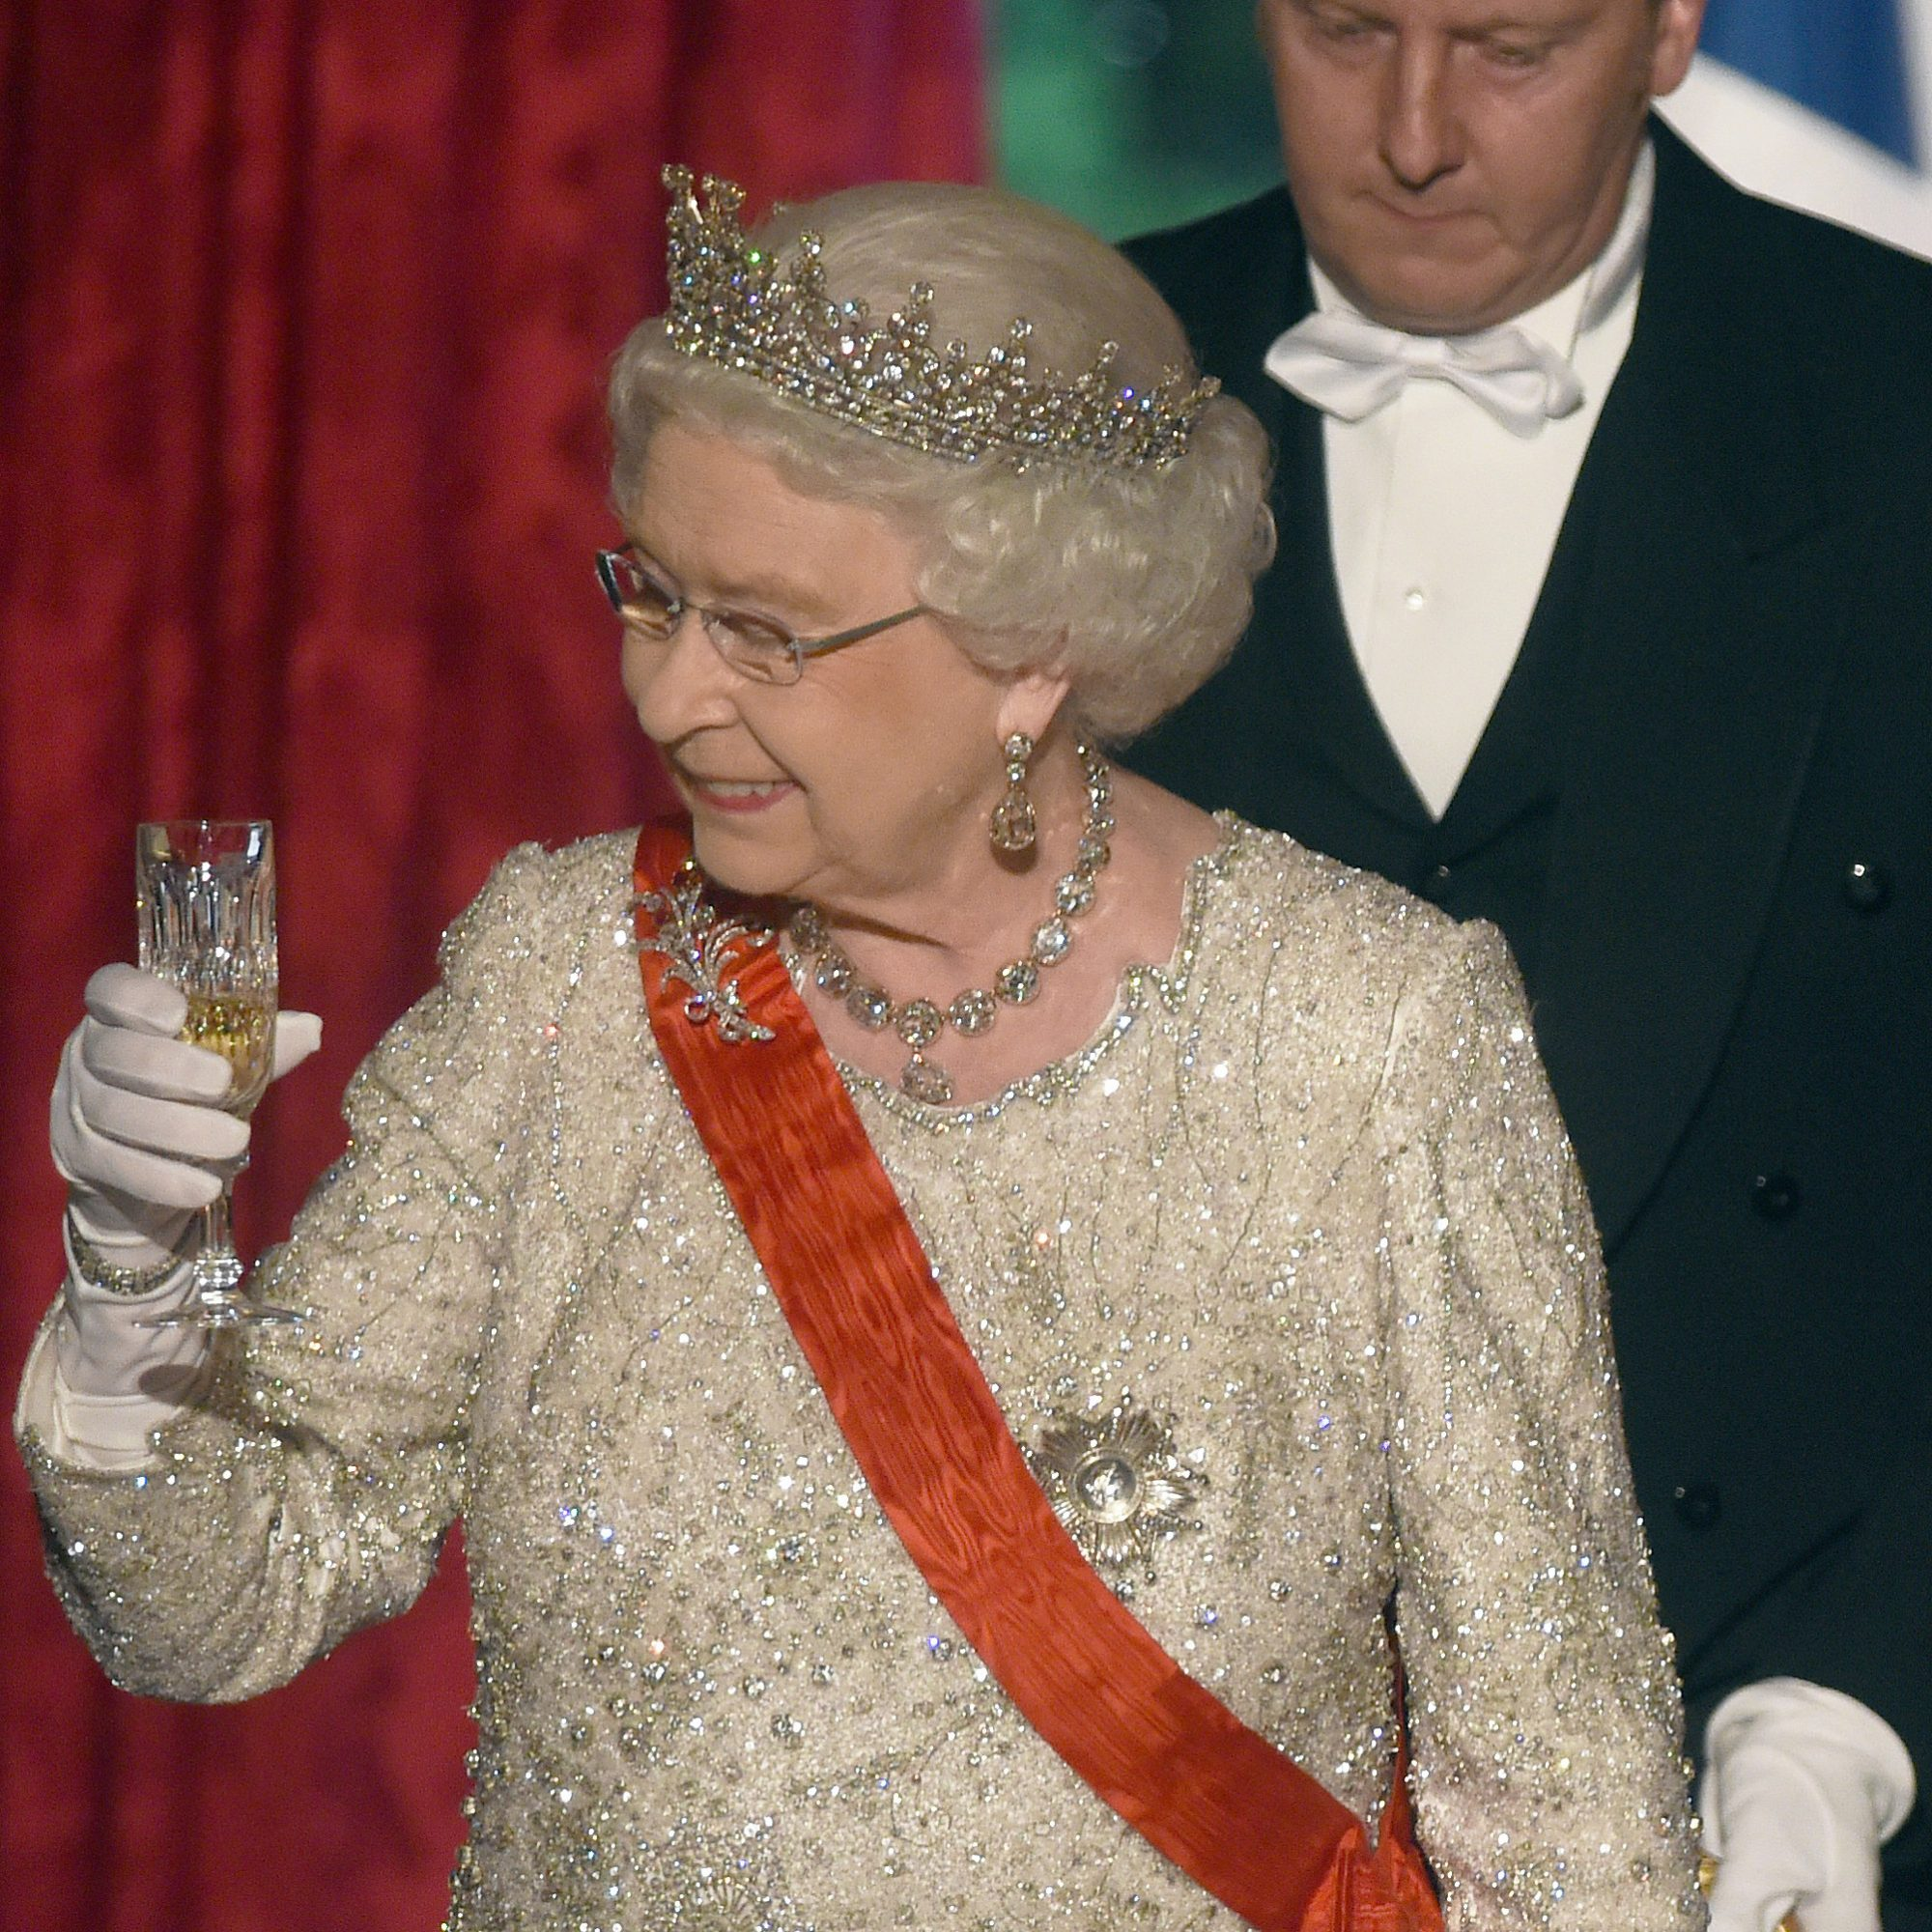 British Pubs Allowed to Extend Hours in Honor of Queen's 90th Birthday